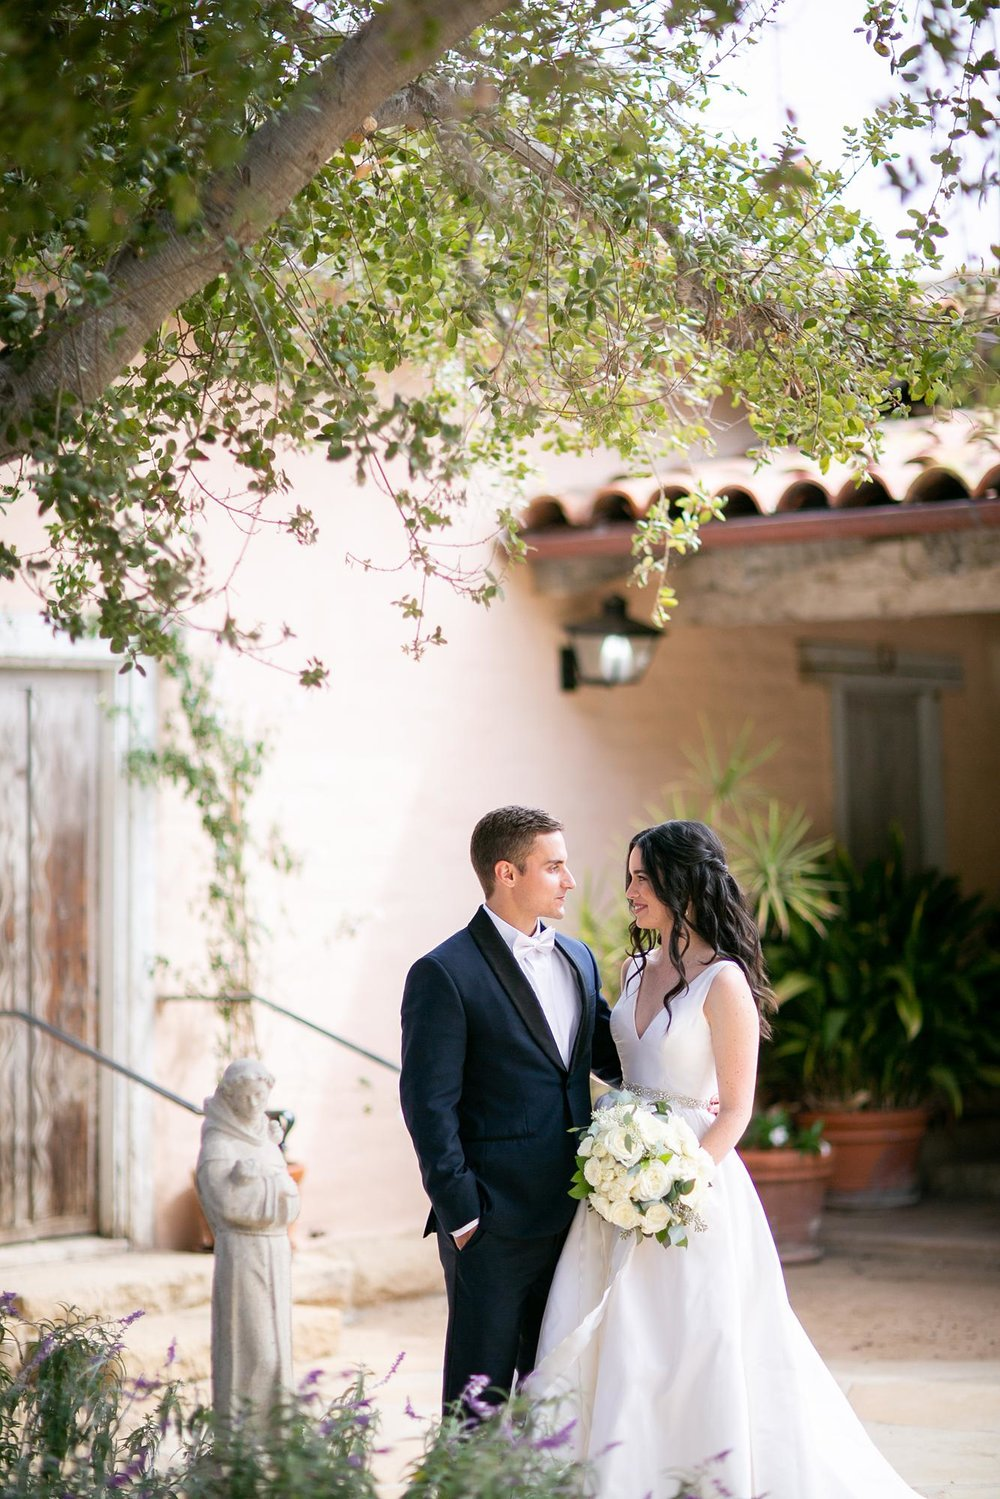 Santa Barbara Historical Museum Wedding | Miki & Sonja Photography | mikiandsonja.com